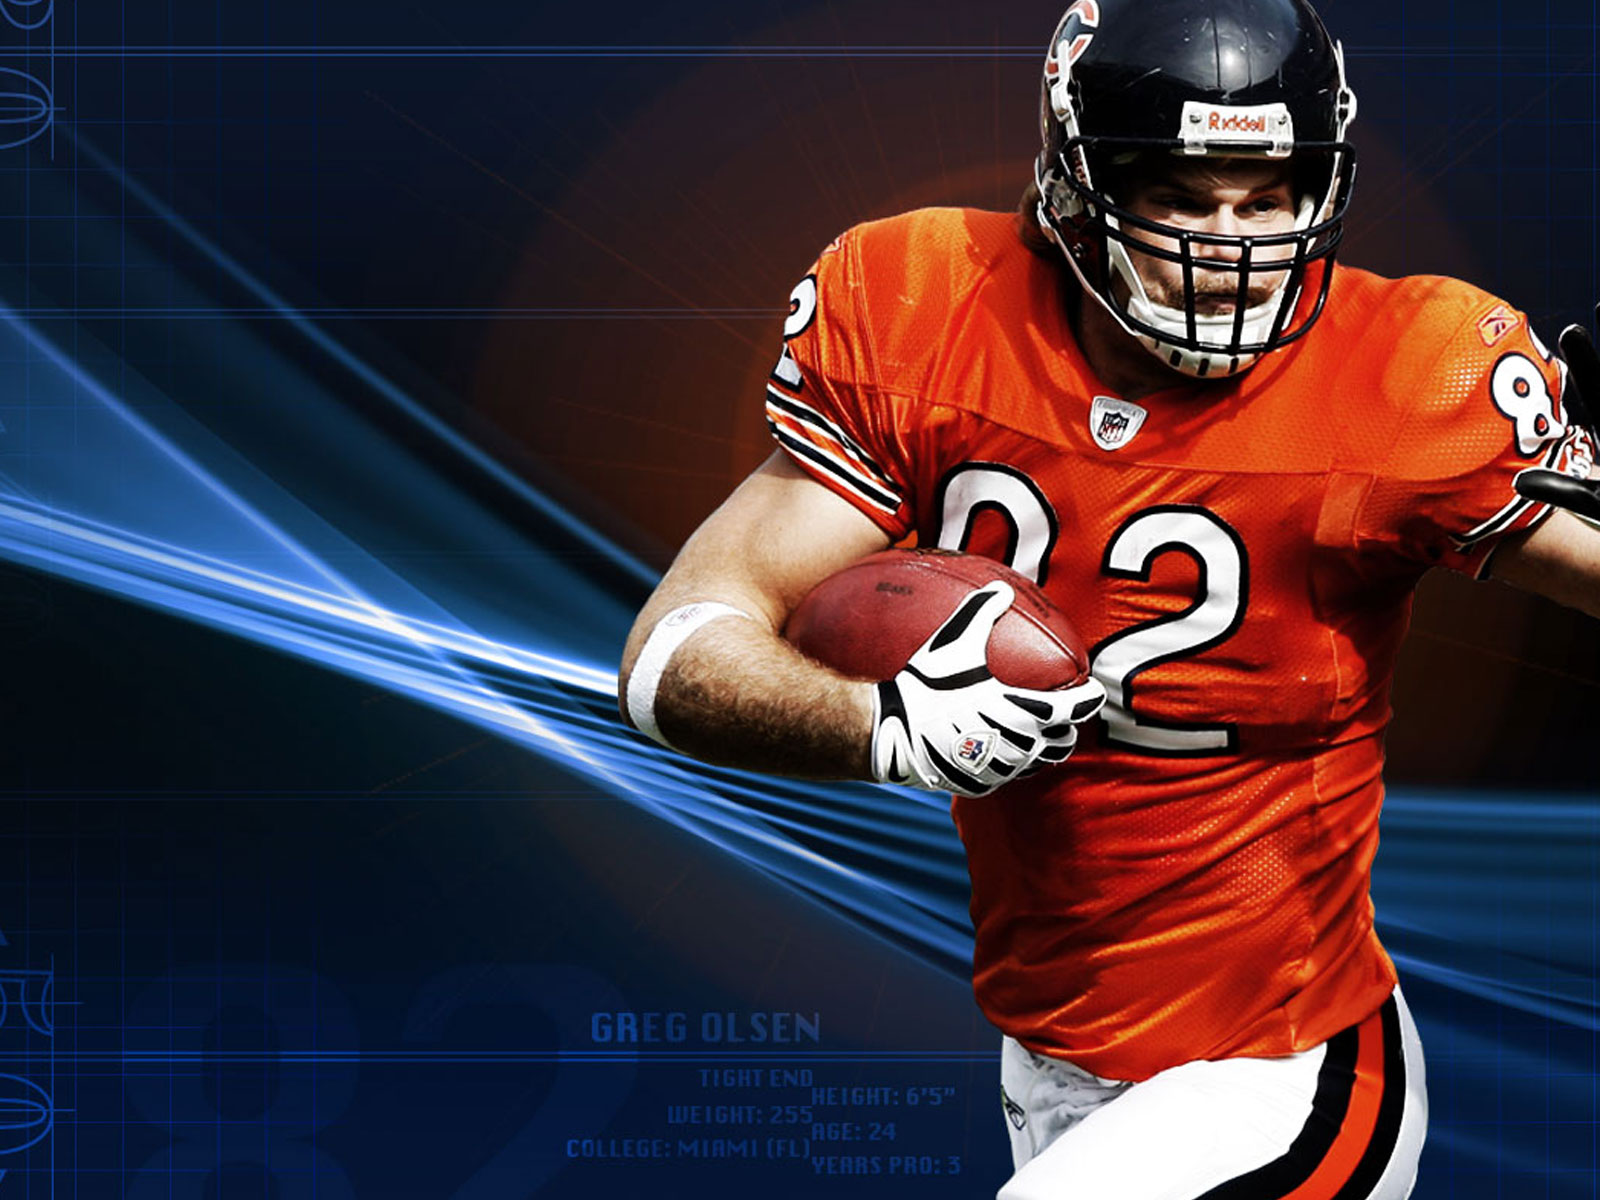 Chicago Bears wallpaper Chicago Bears wallpapers 1600x1200